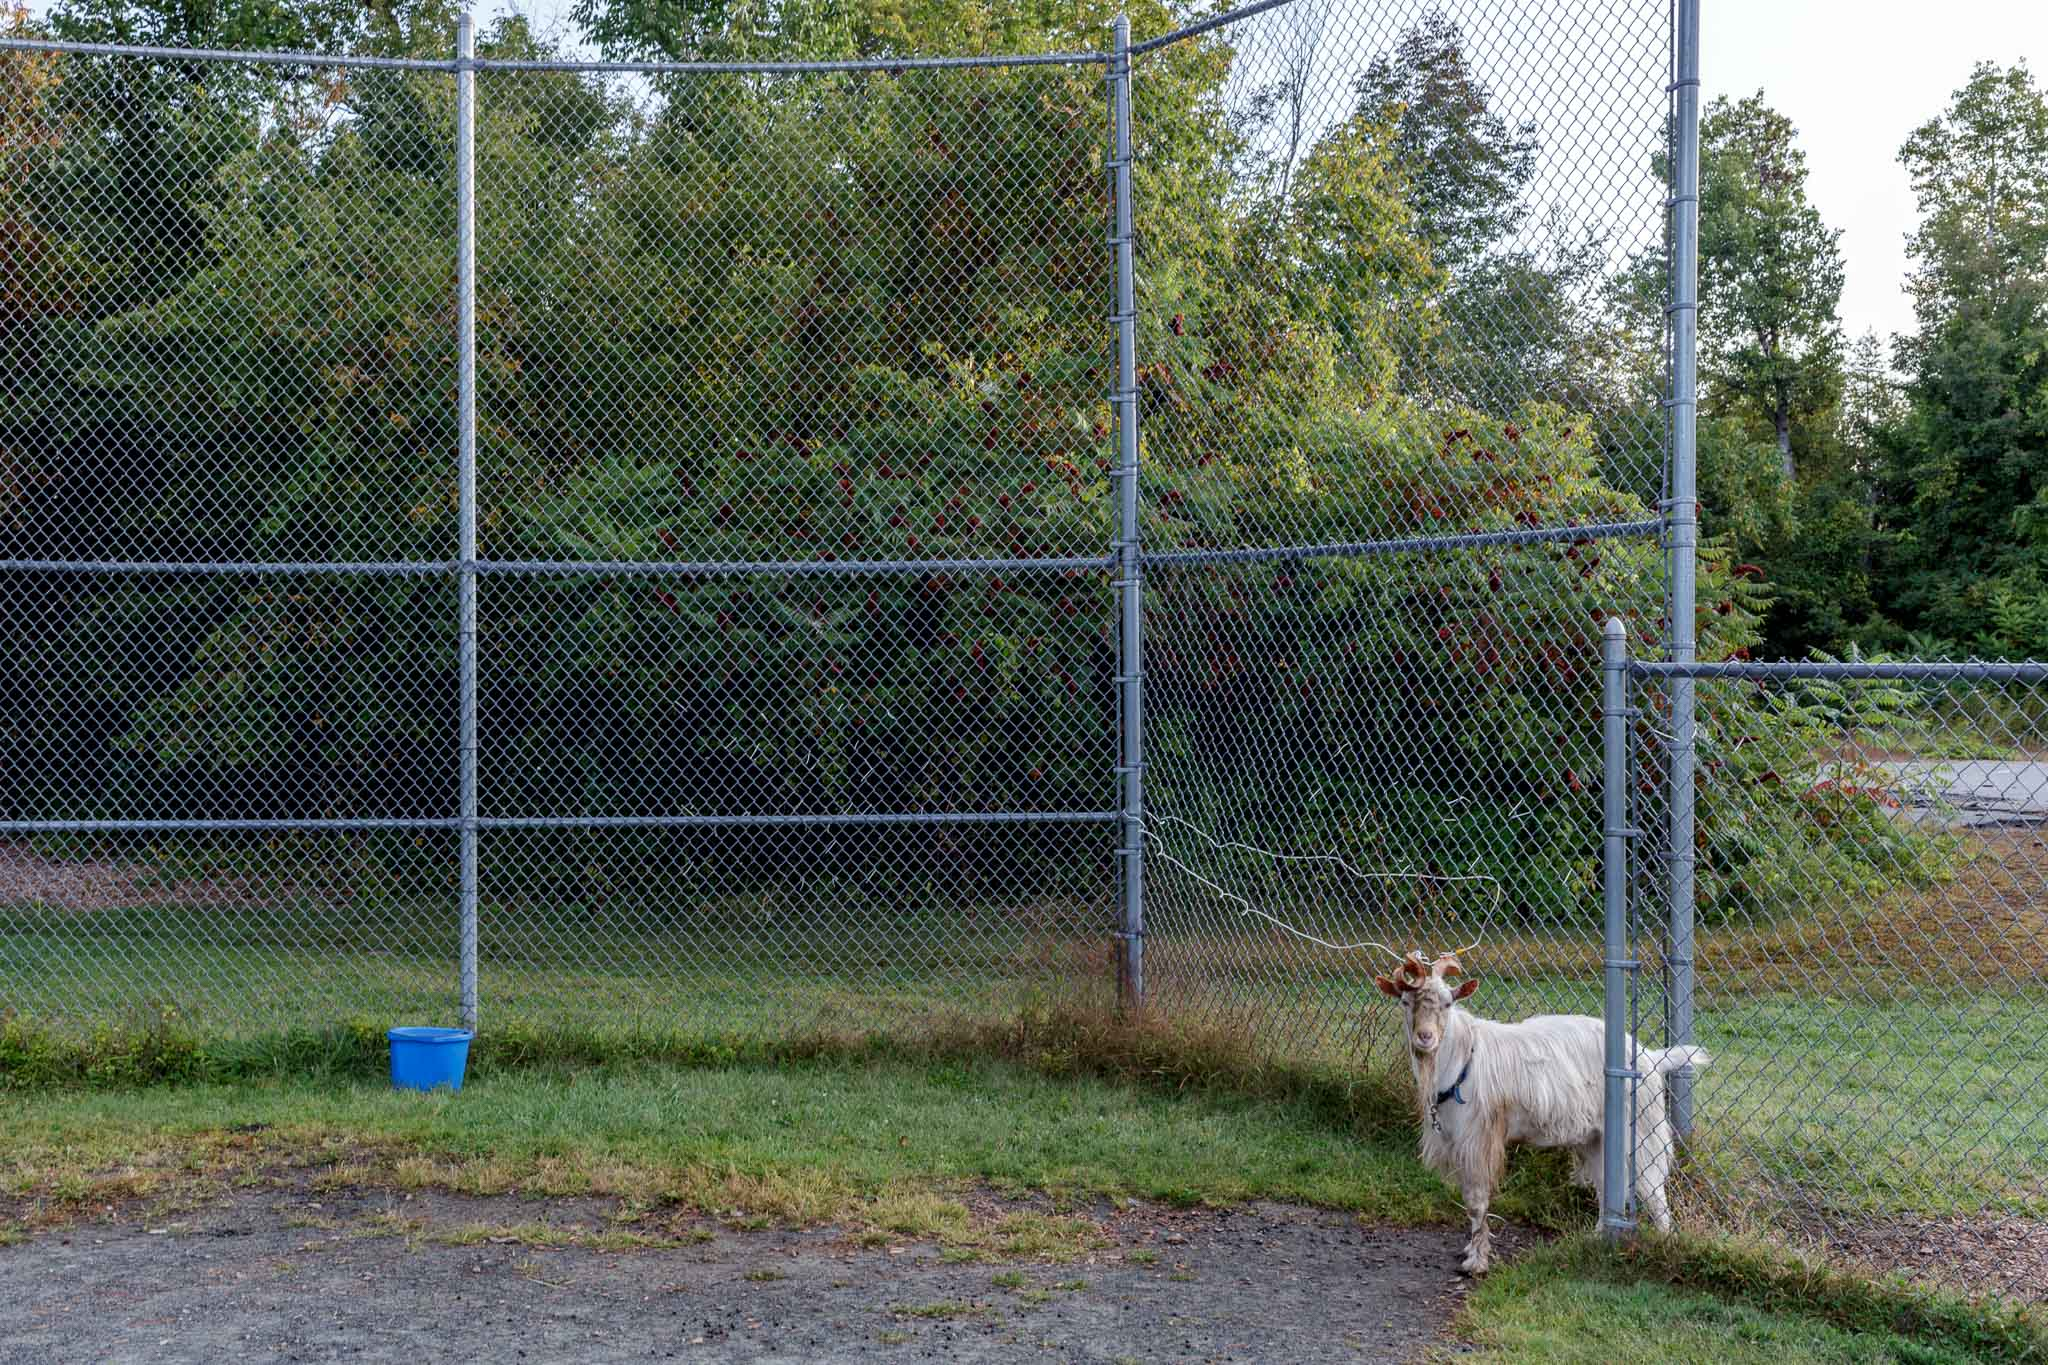 Goat and Fence